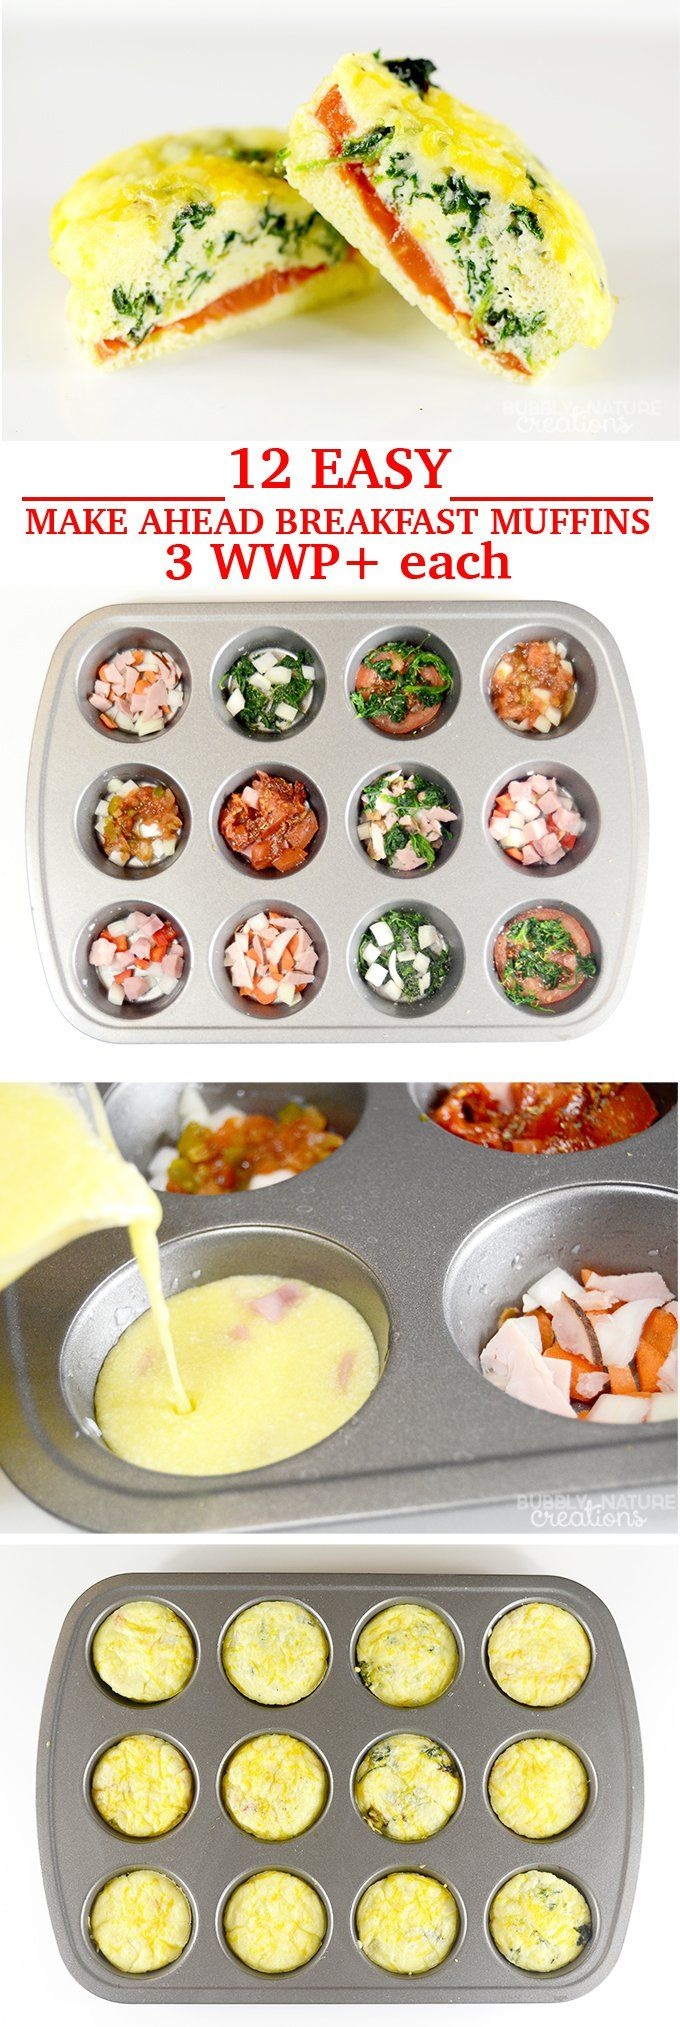 12 Easy Make Ahead Breakfast Muffins only 3 WW Plus Points #WeightWatchers #WWSponsored #HealthyEggMeals